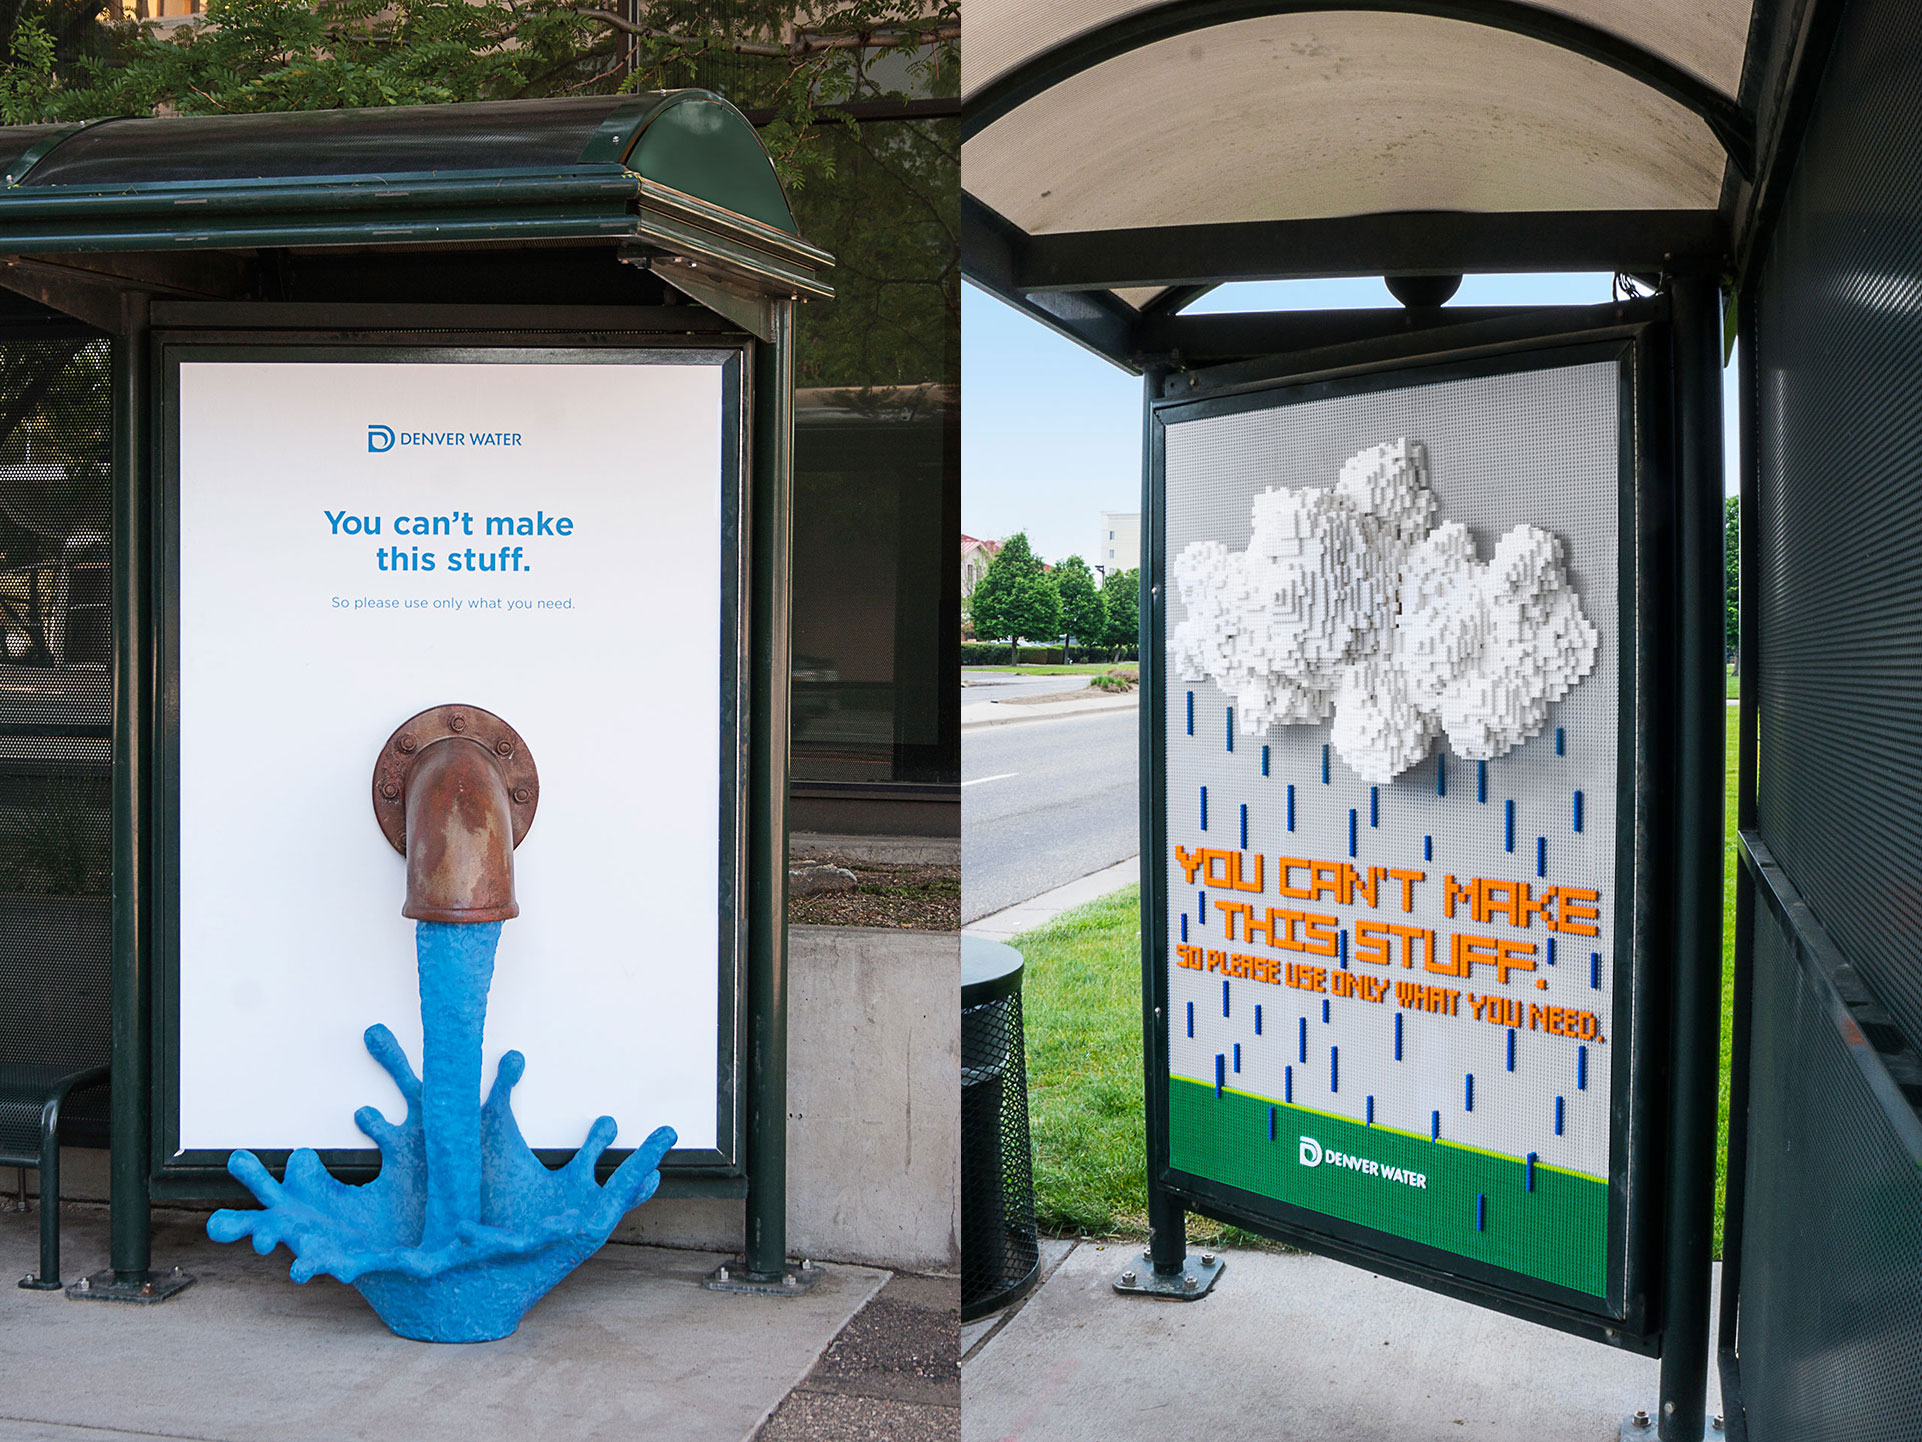 Denver Water S Outdoor Campaign Gets Even Cooler With